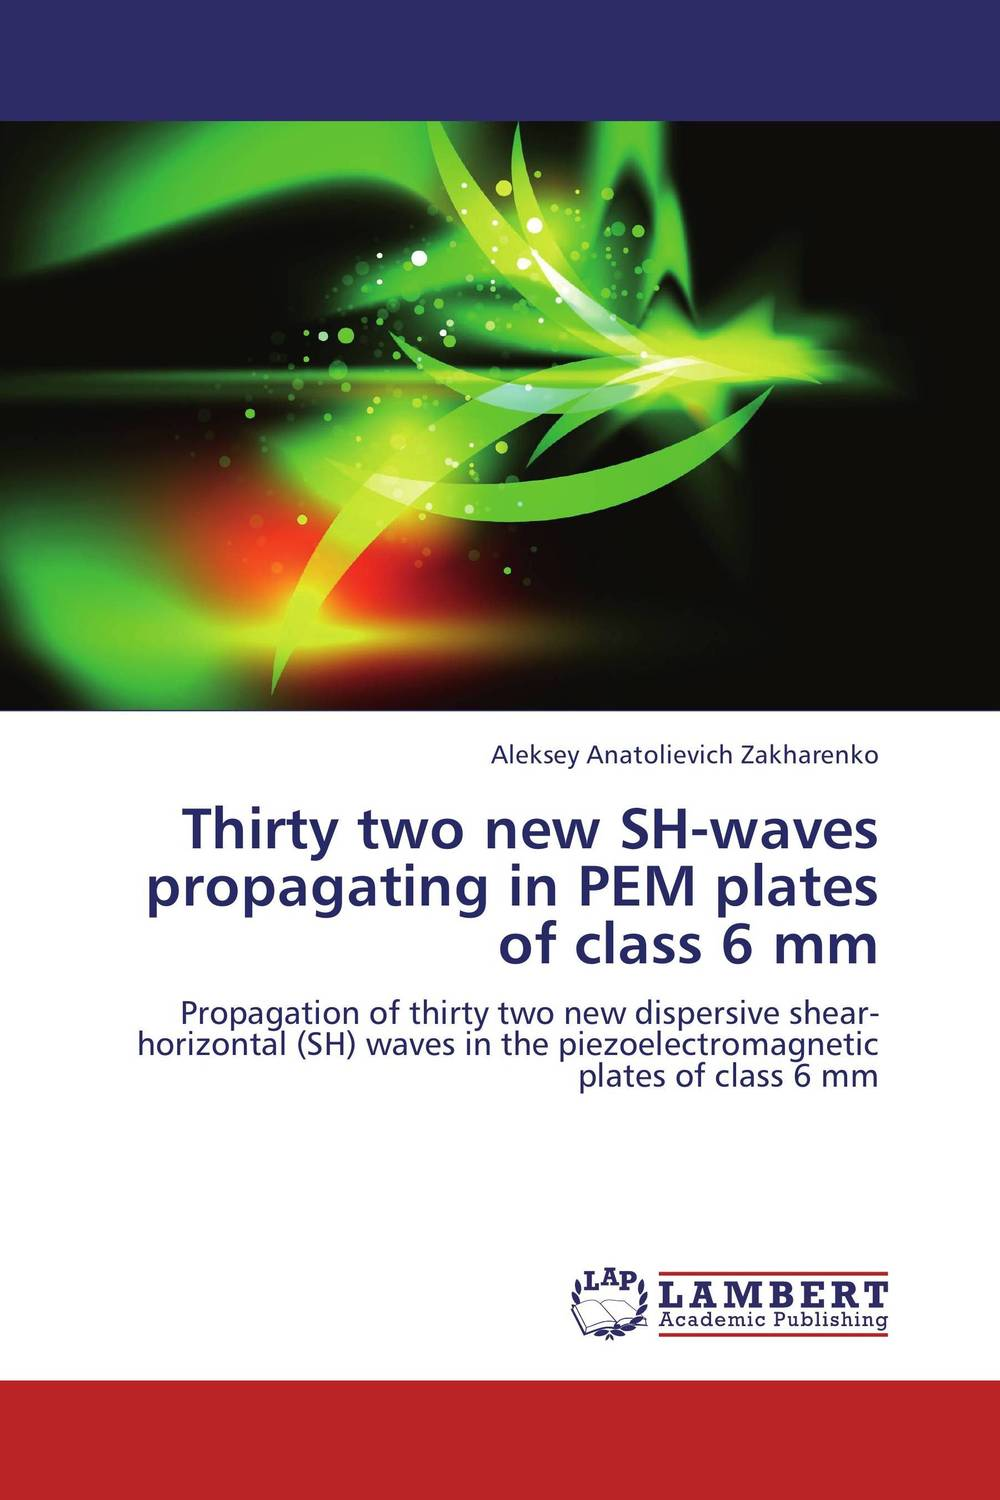 Thirty two new SH-waves propagating in PEM plates of class 6 mm thirty two ботинки для сноуборда женские thirty two z lashed assorted